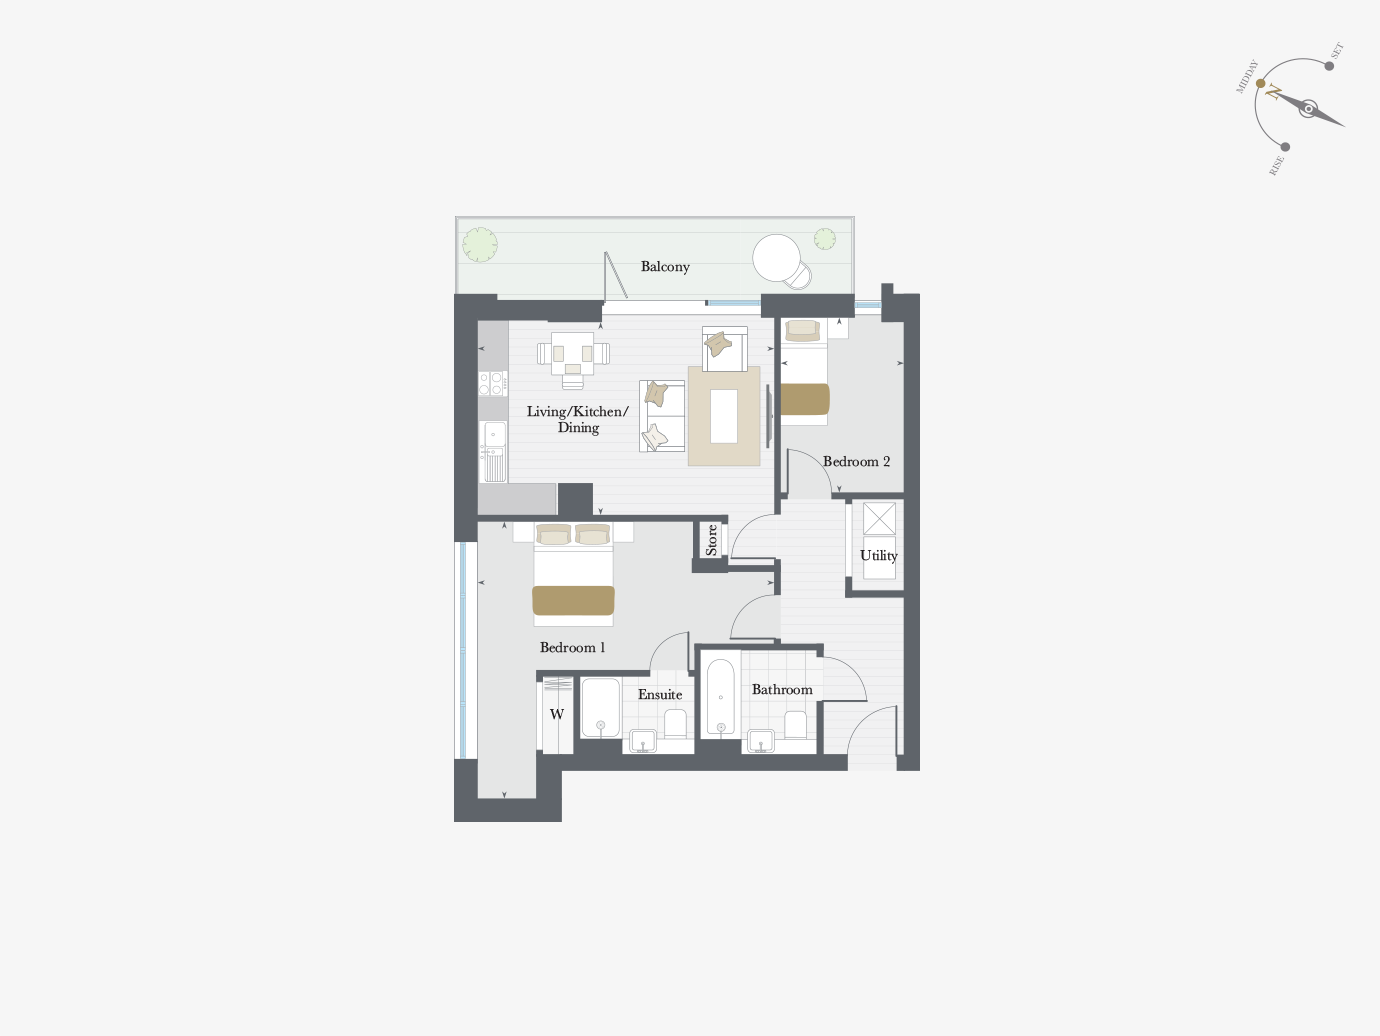 Floorplan for Apartment P6/01 at City Wharf, Sixth